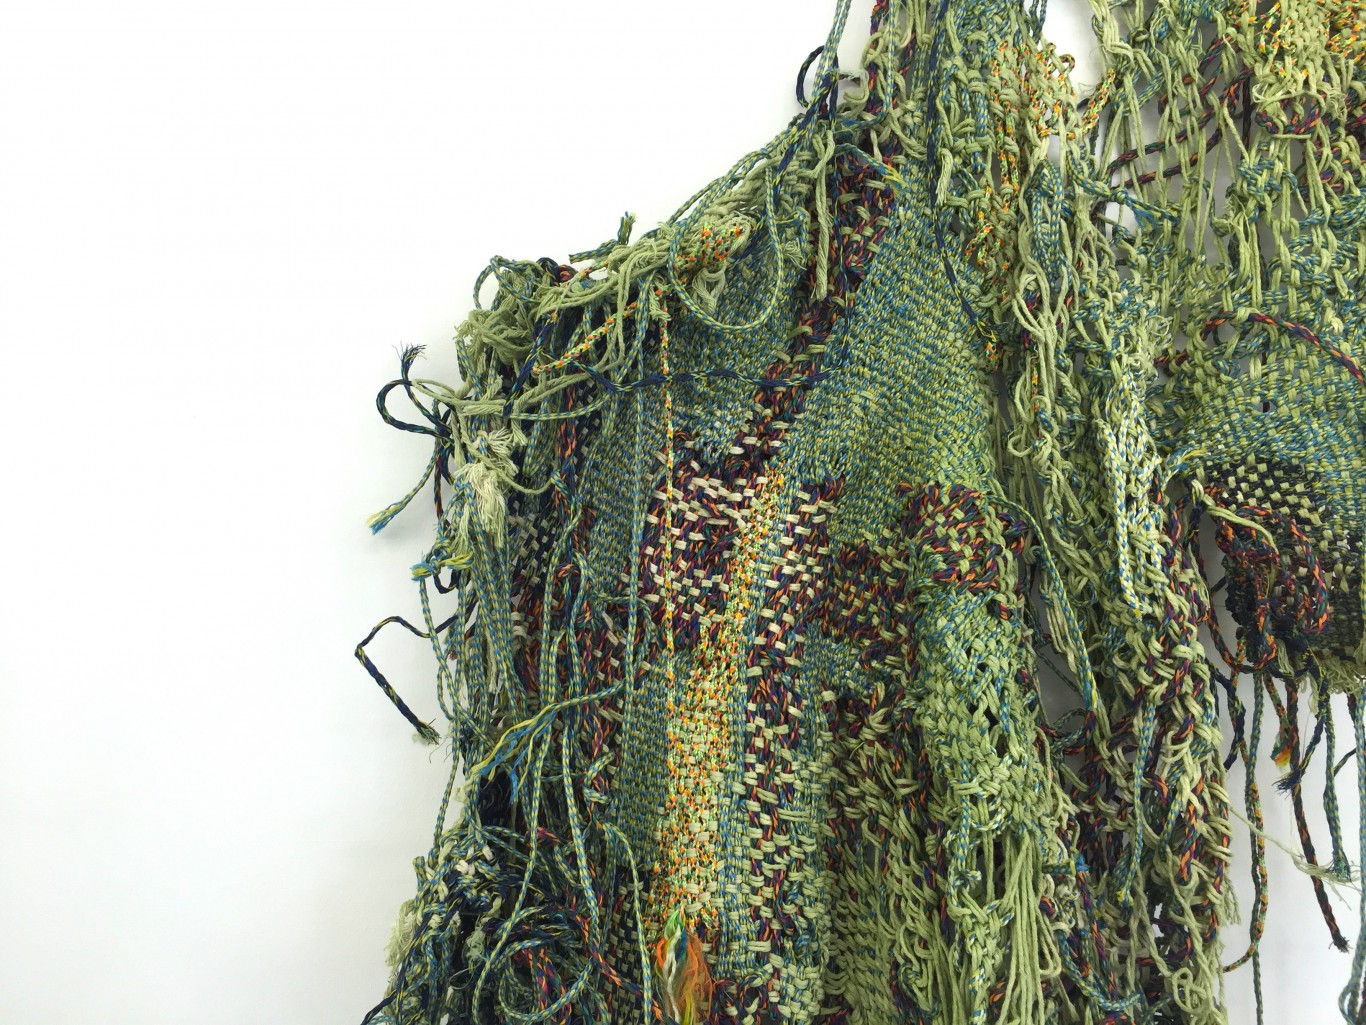 Igshaan Adams, Groen Amara, 2016. Woven nylon rope and string; approx. 262 x 112 x 26 cm